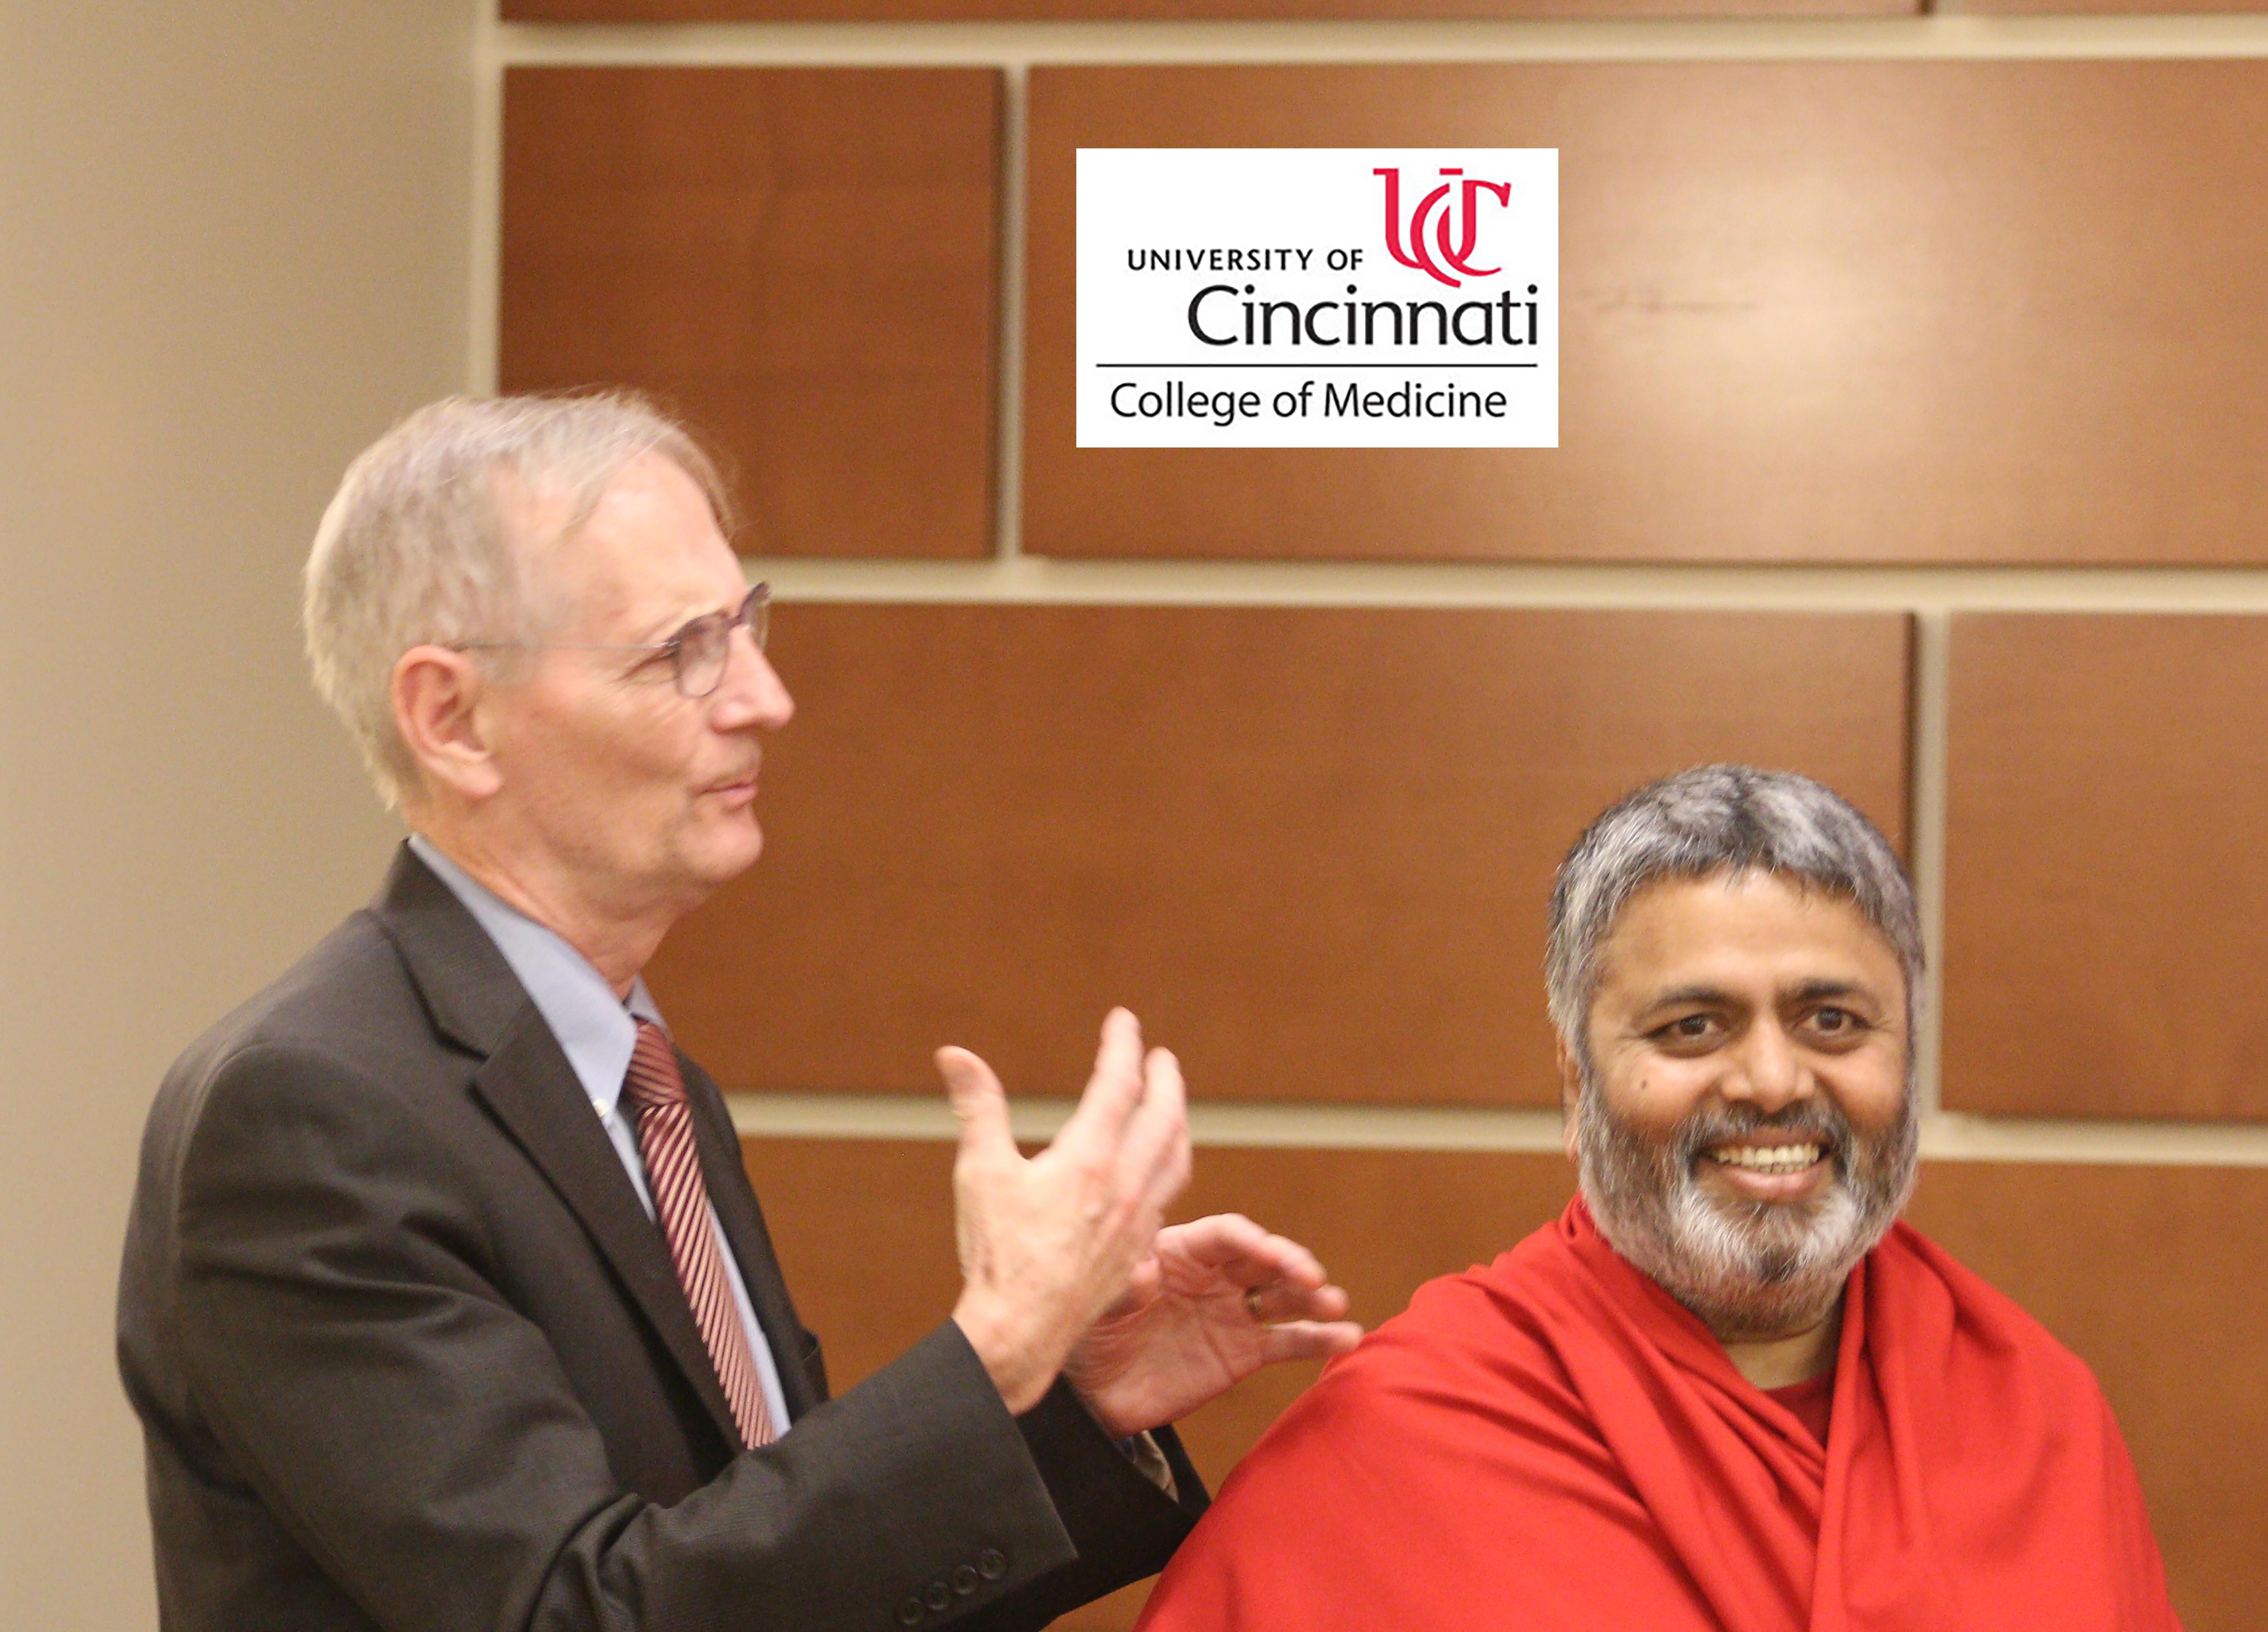 Dr. Richard P. Lofgren, MD, MPH, FACP President and CEO, UC Health with Dr. Shivanand